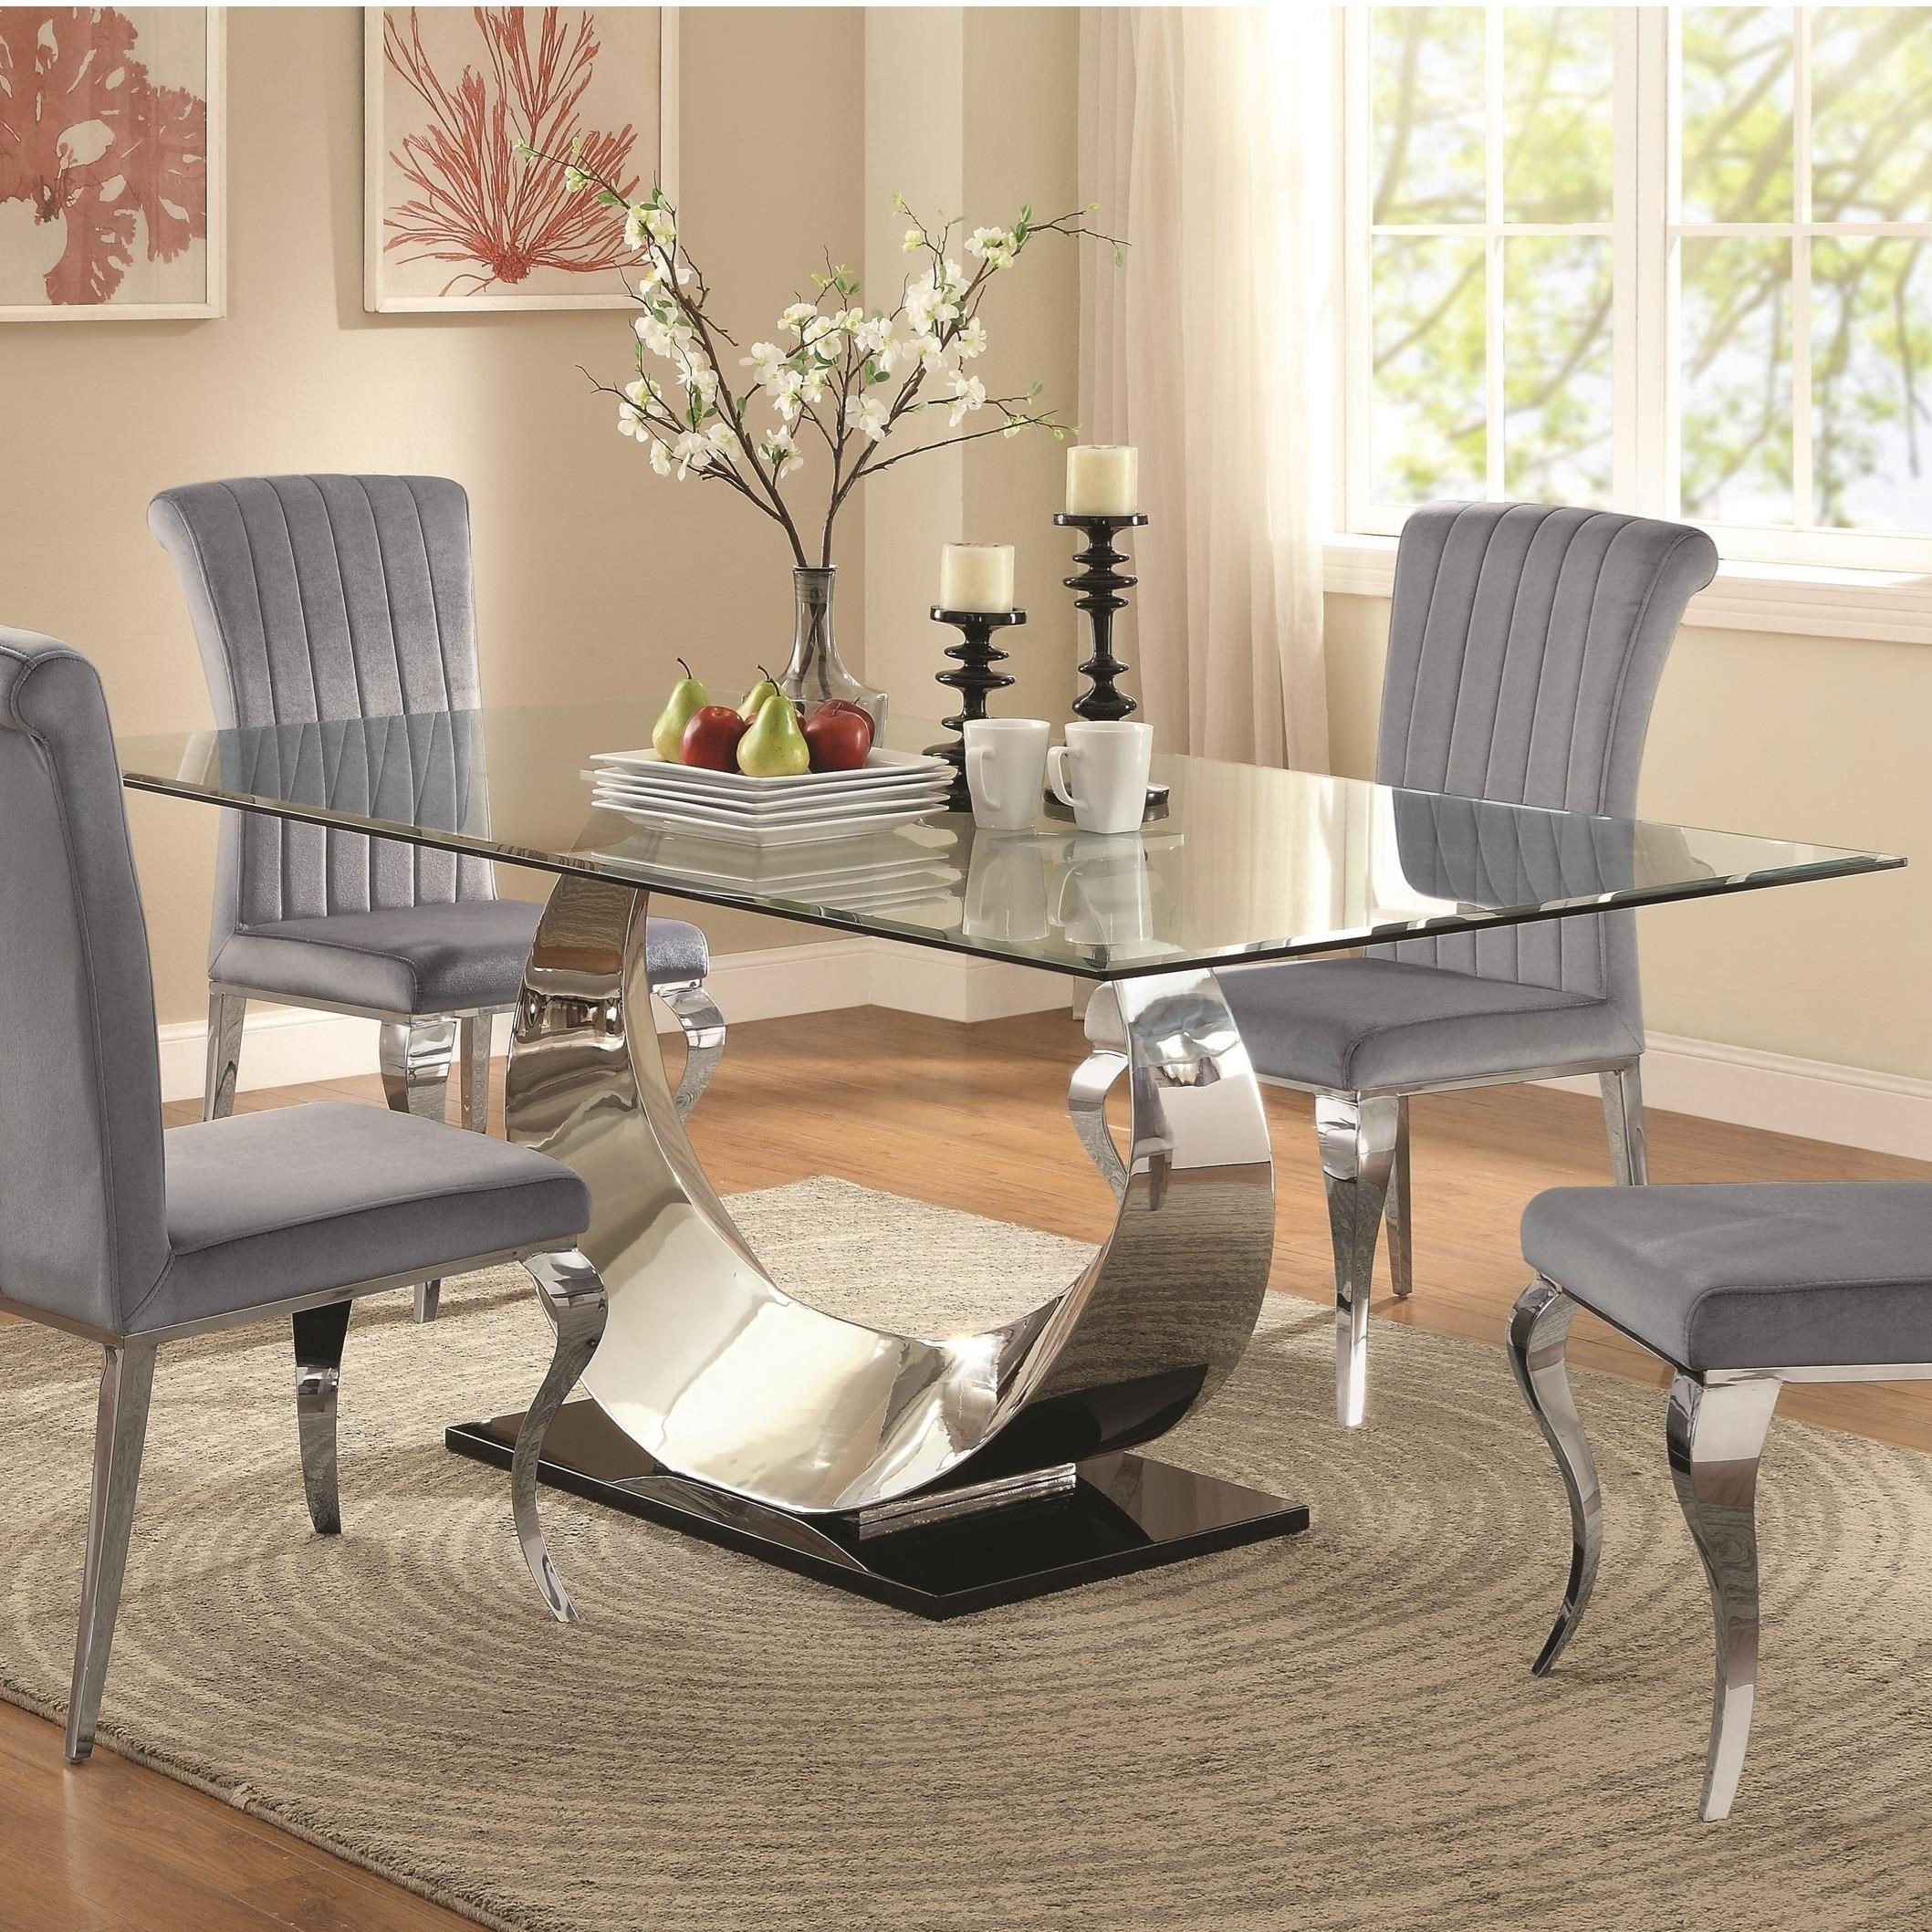 Coaster Manessier Contemporary Glass Dining Table